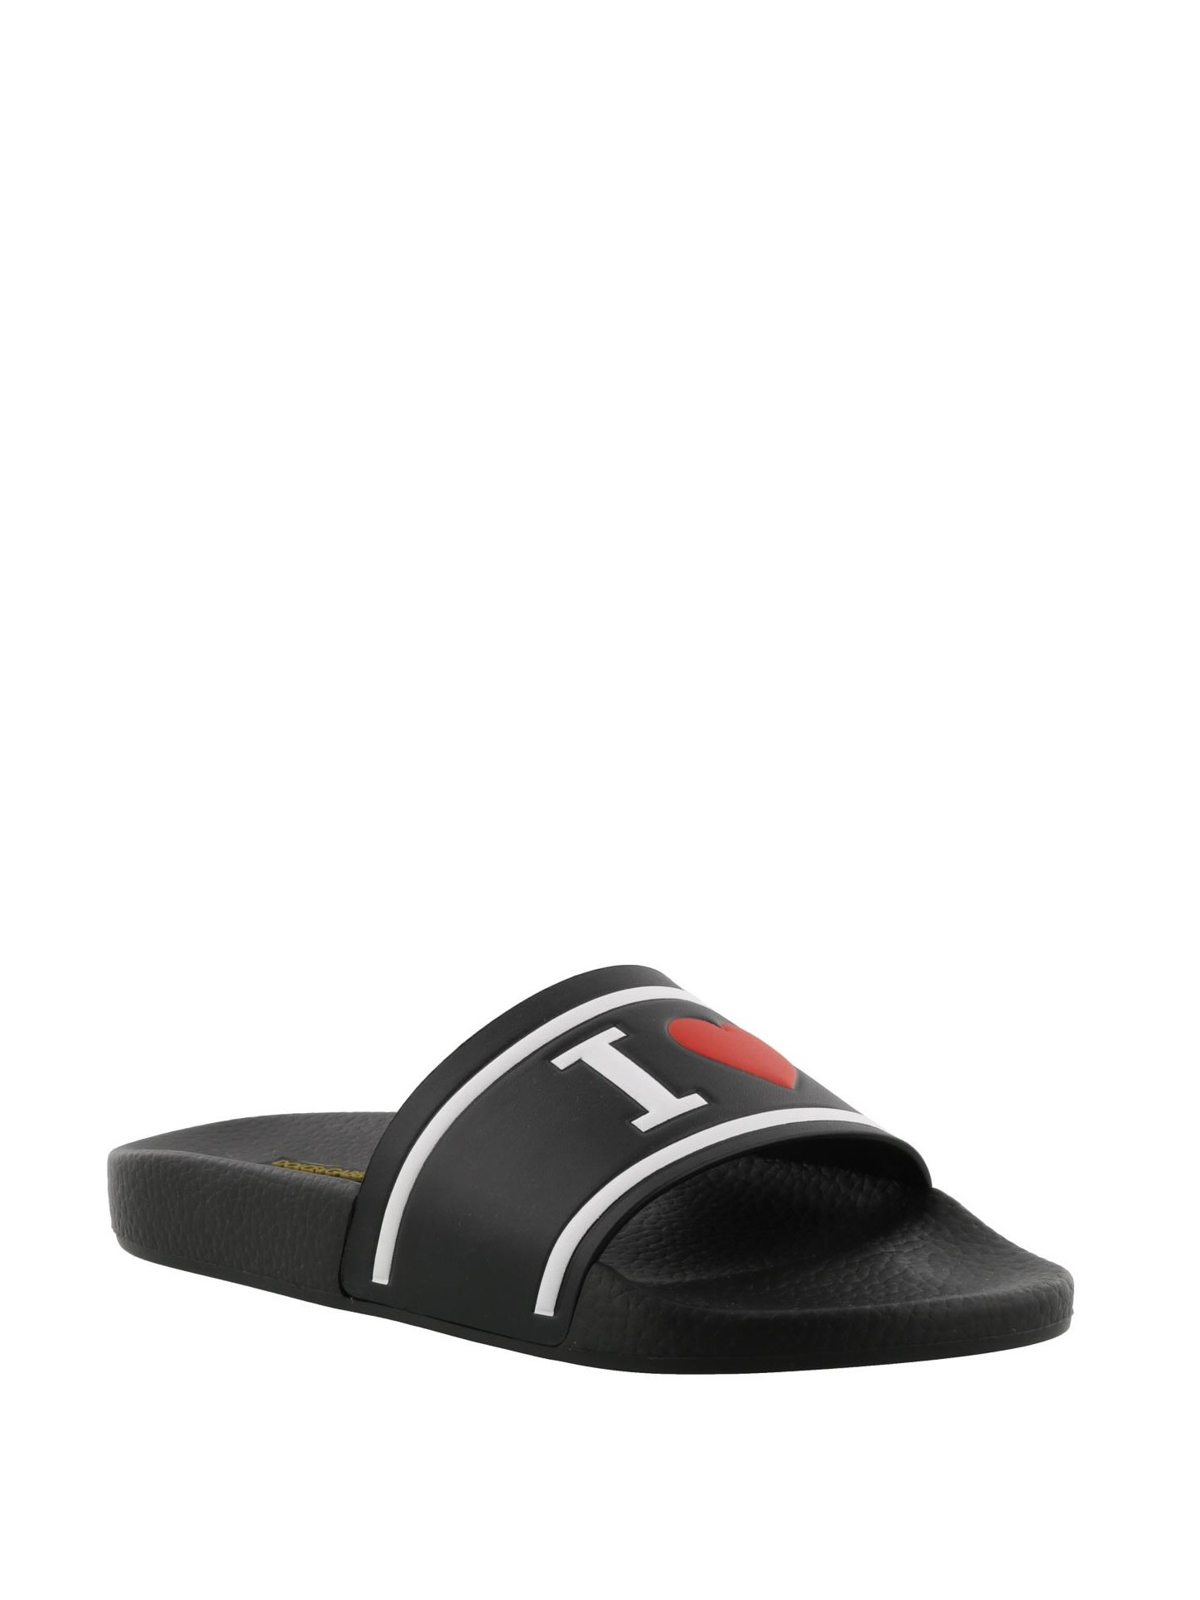 Dolce & Gabbana Sandals SAINT BARTH leather logo JkAgl